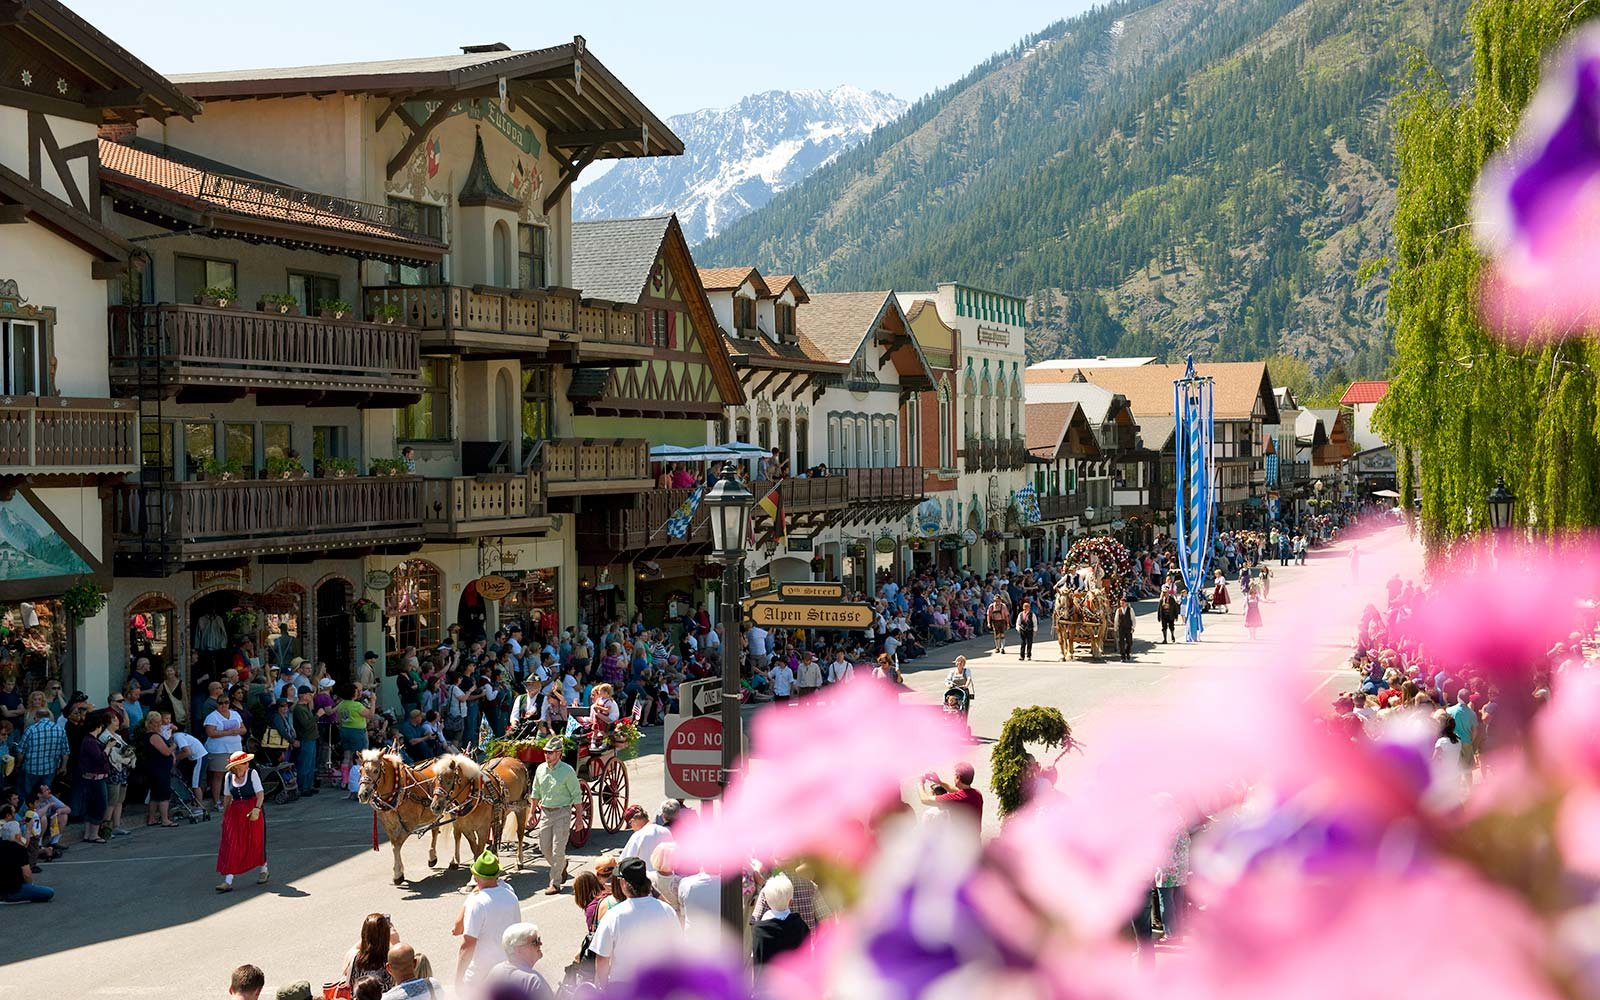 Bavarian-style town of Leavenworth Washington